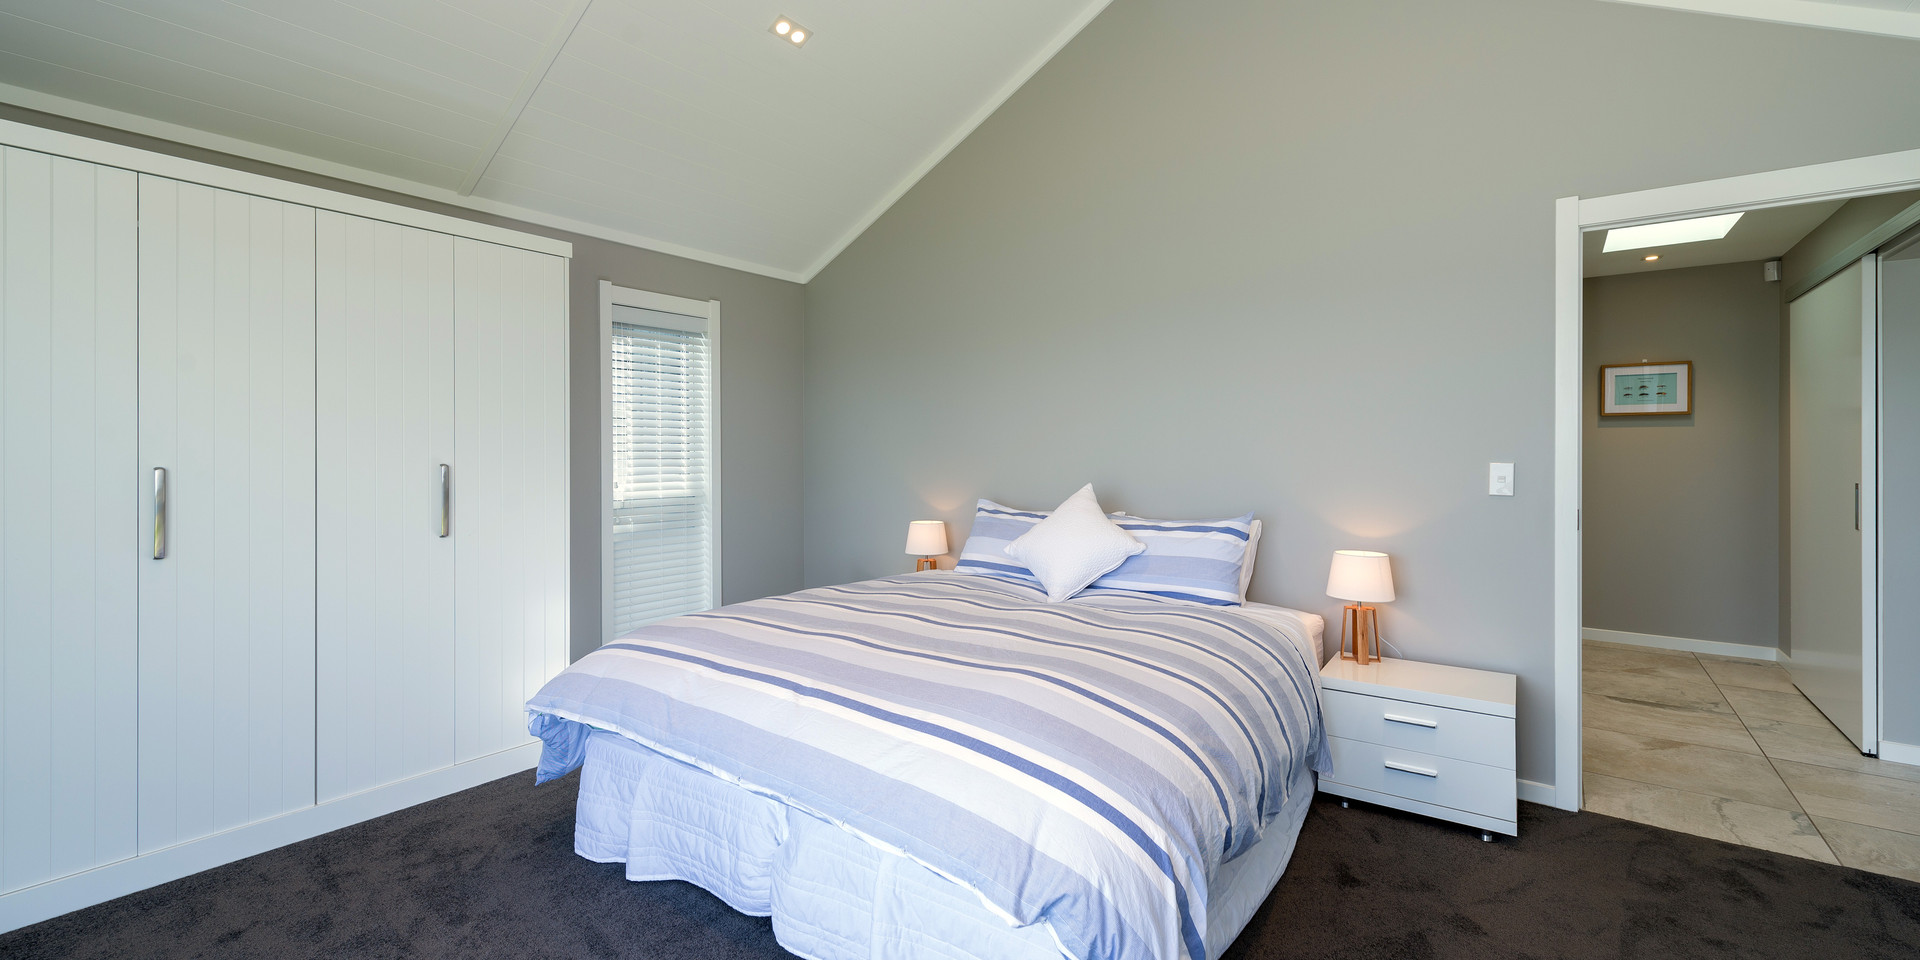 Taupo Boathouse Bedroom